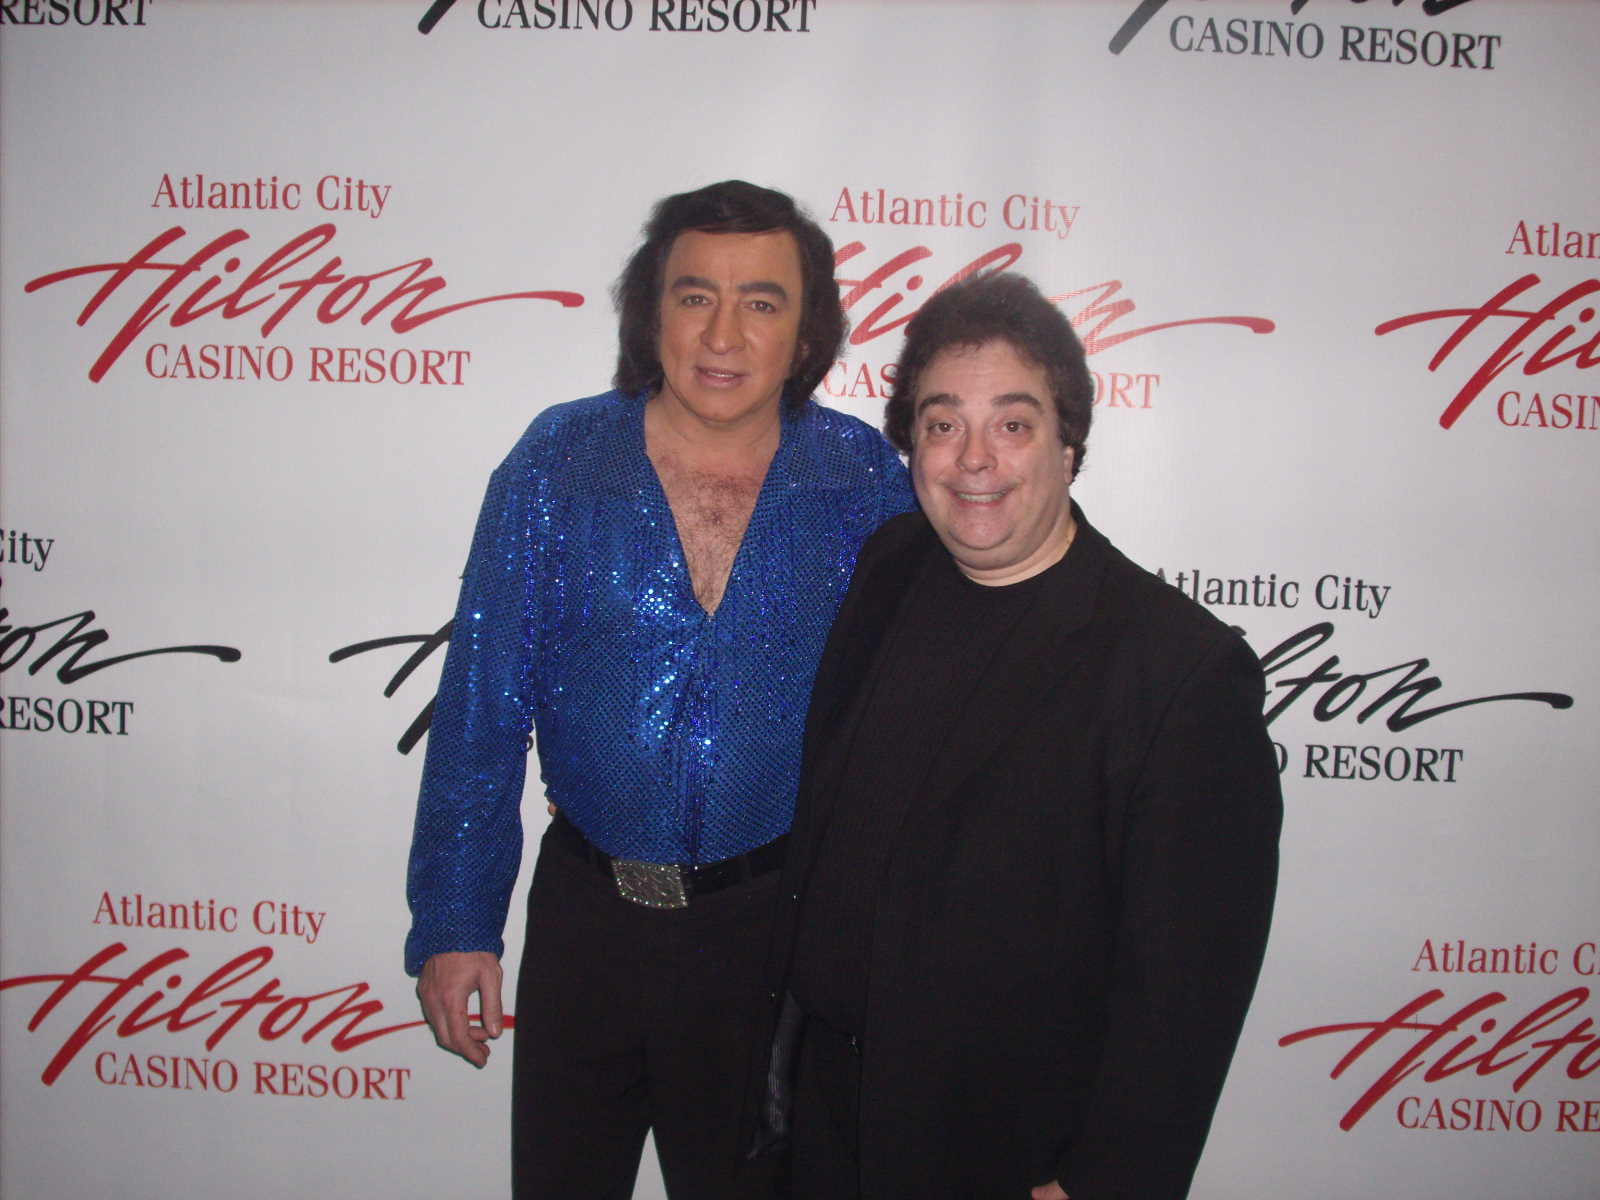 Tom Sadge as Neil Diamond with Pete Michaels, Ventriloquist/Comedian/Singer, from the cast of A Really Big Shew - Hilton Casino Resort Atlantic City NJ - Photo: Marion Sadge - webmaster of TomSadge.com